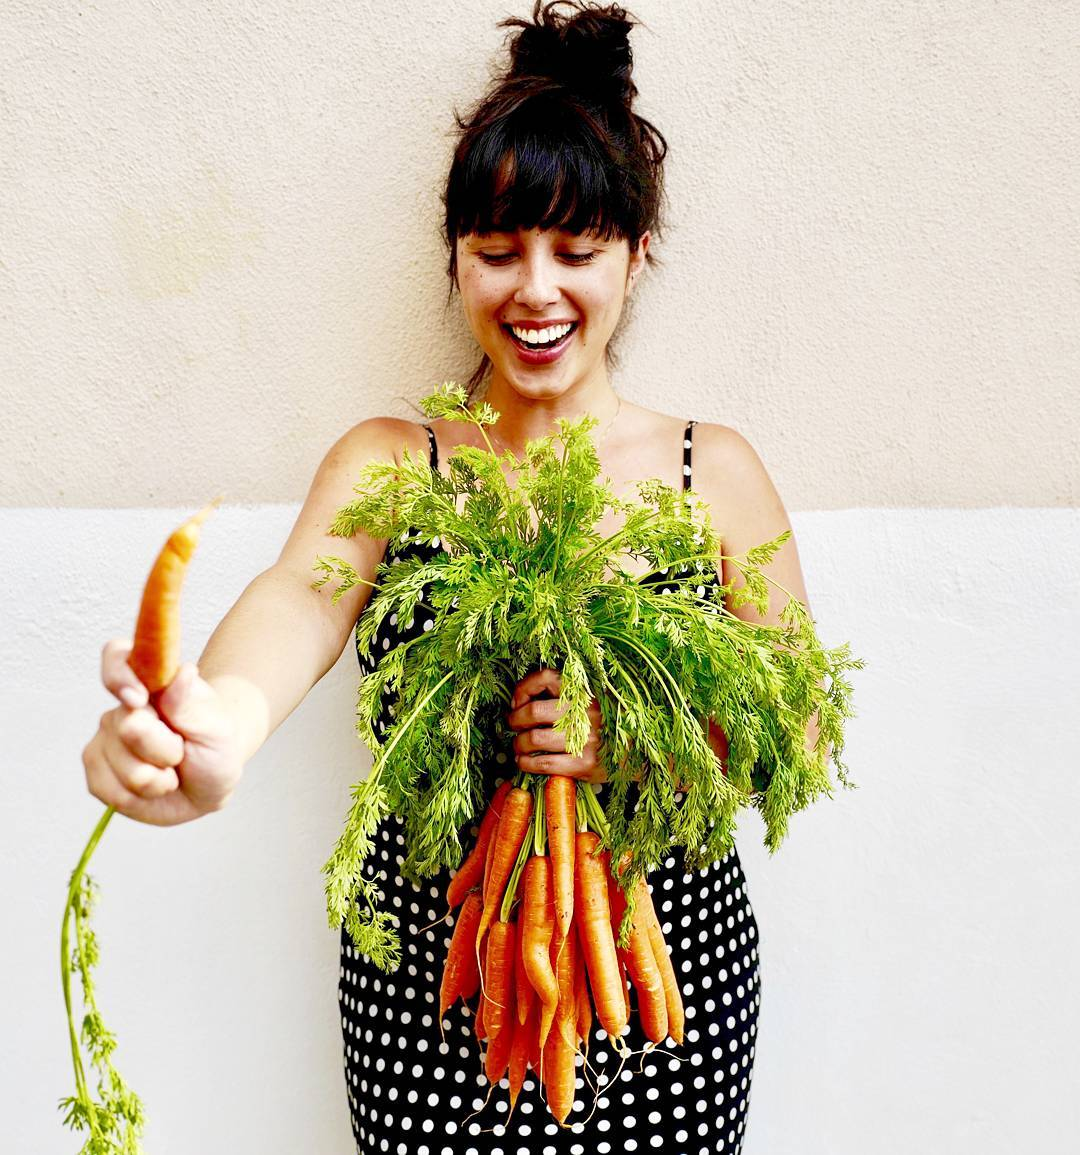 Hemsley & Hemsley Instagram username